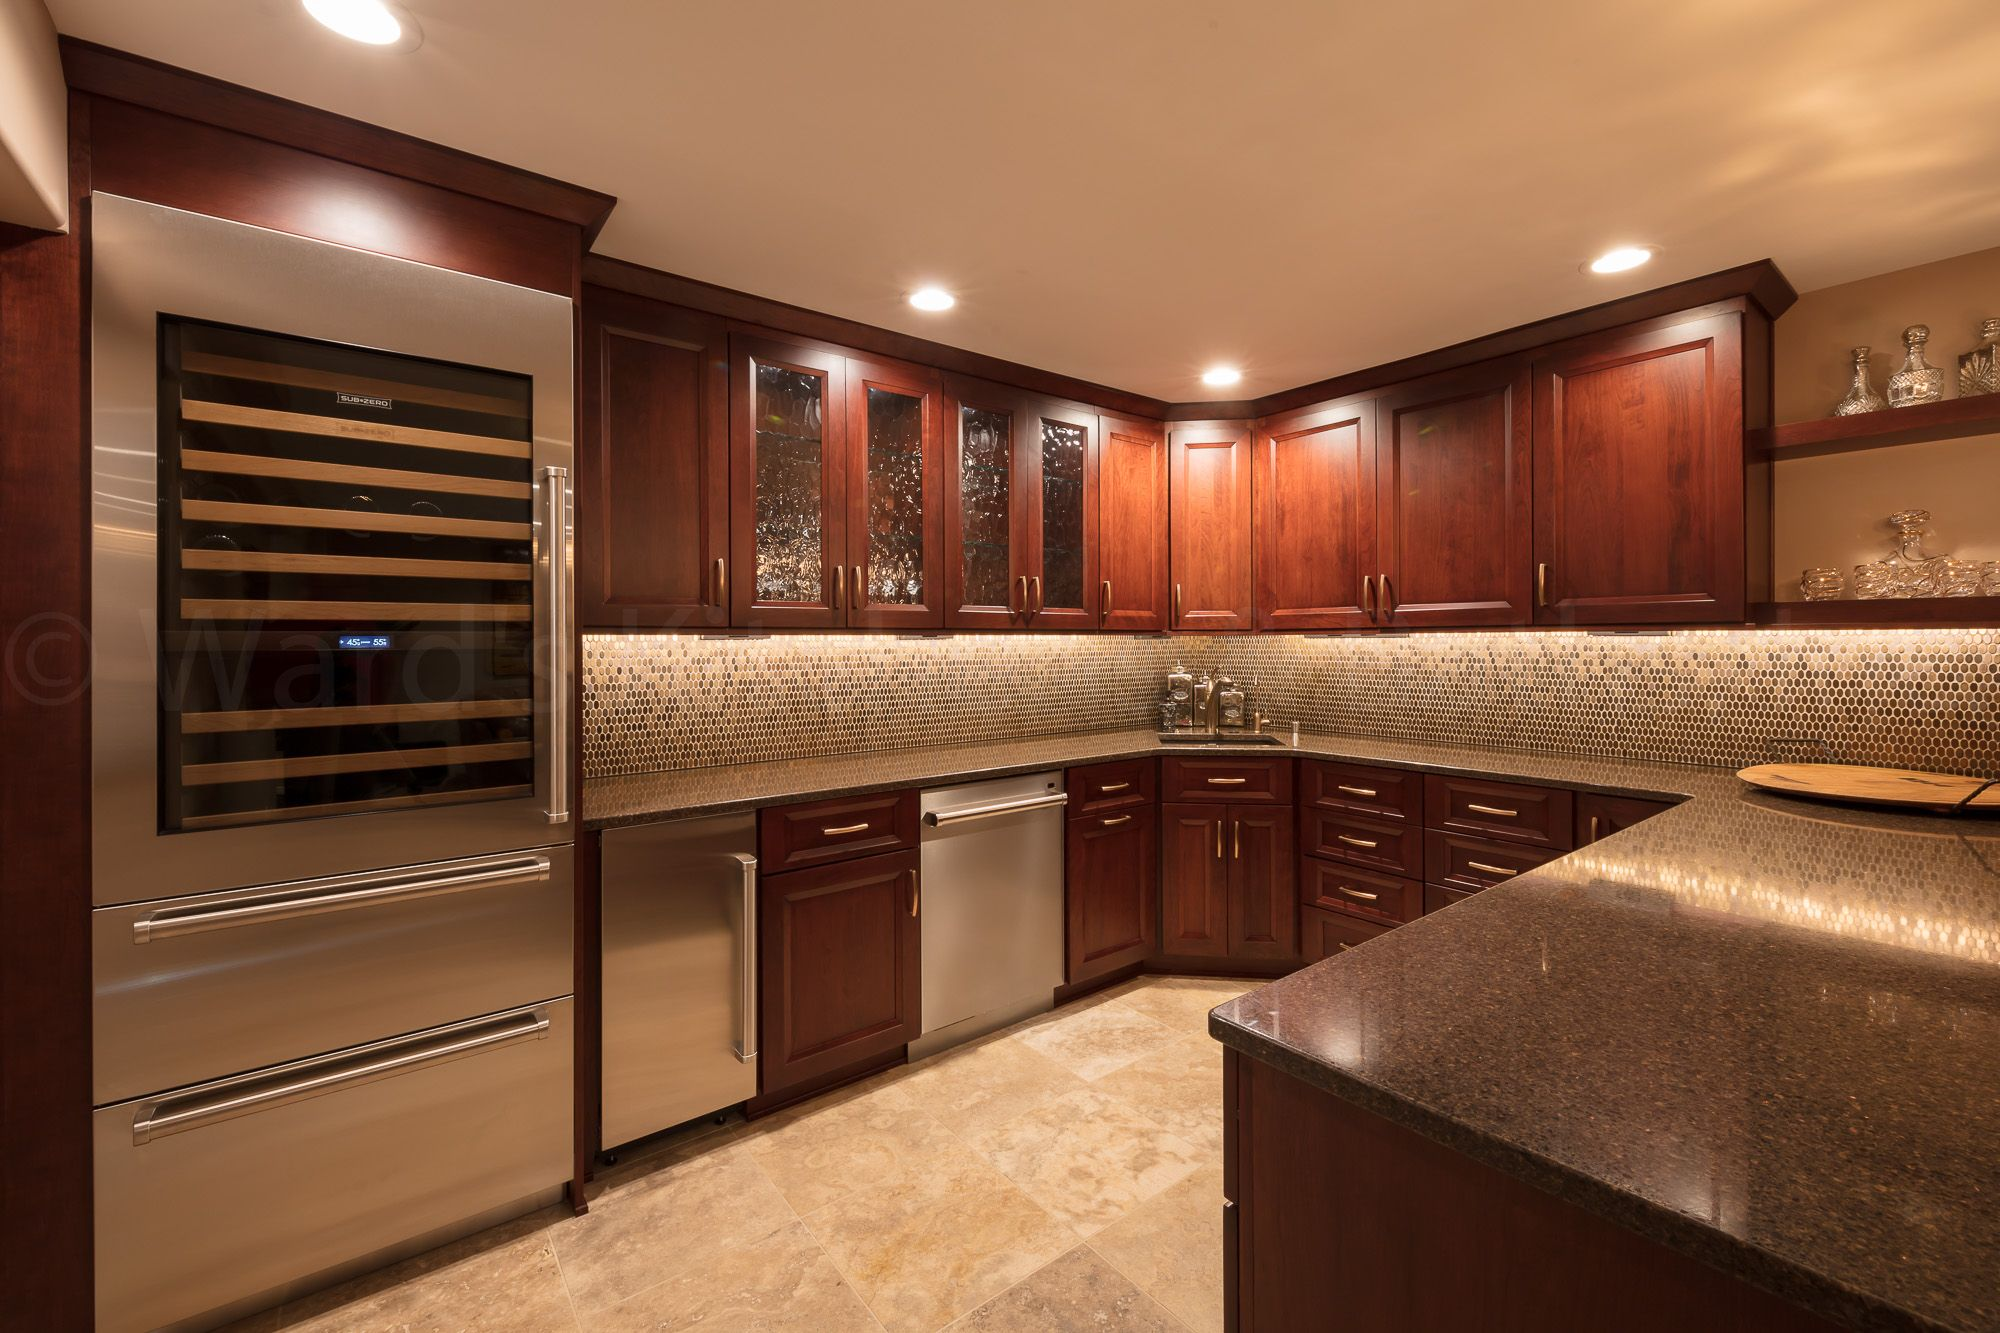 - Basement Kitchen And Living Area Renovation. Features Include